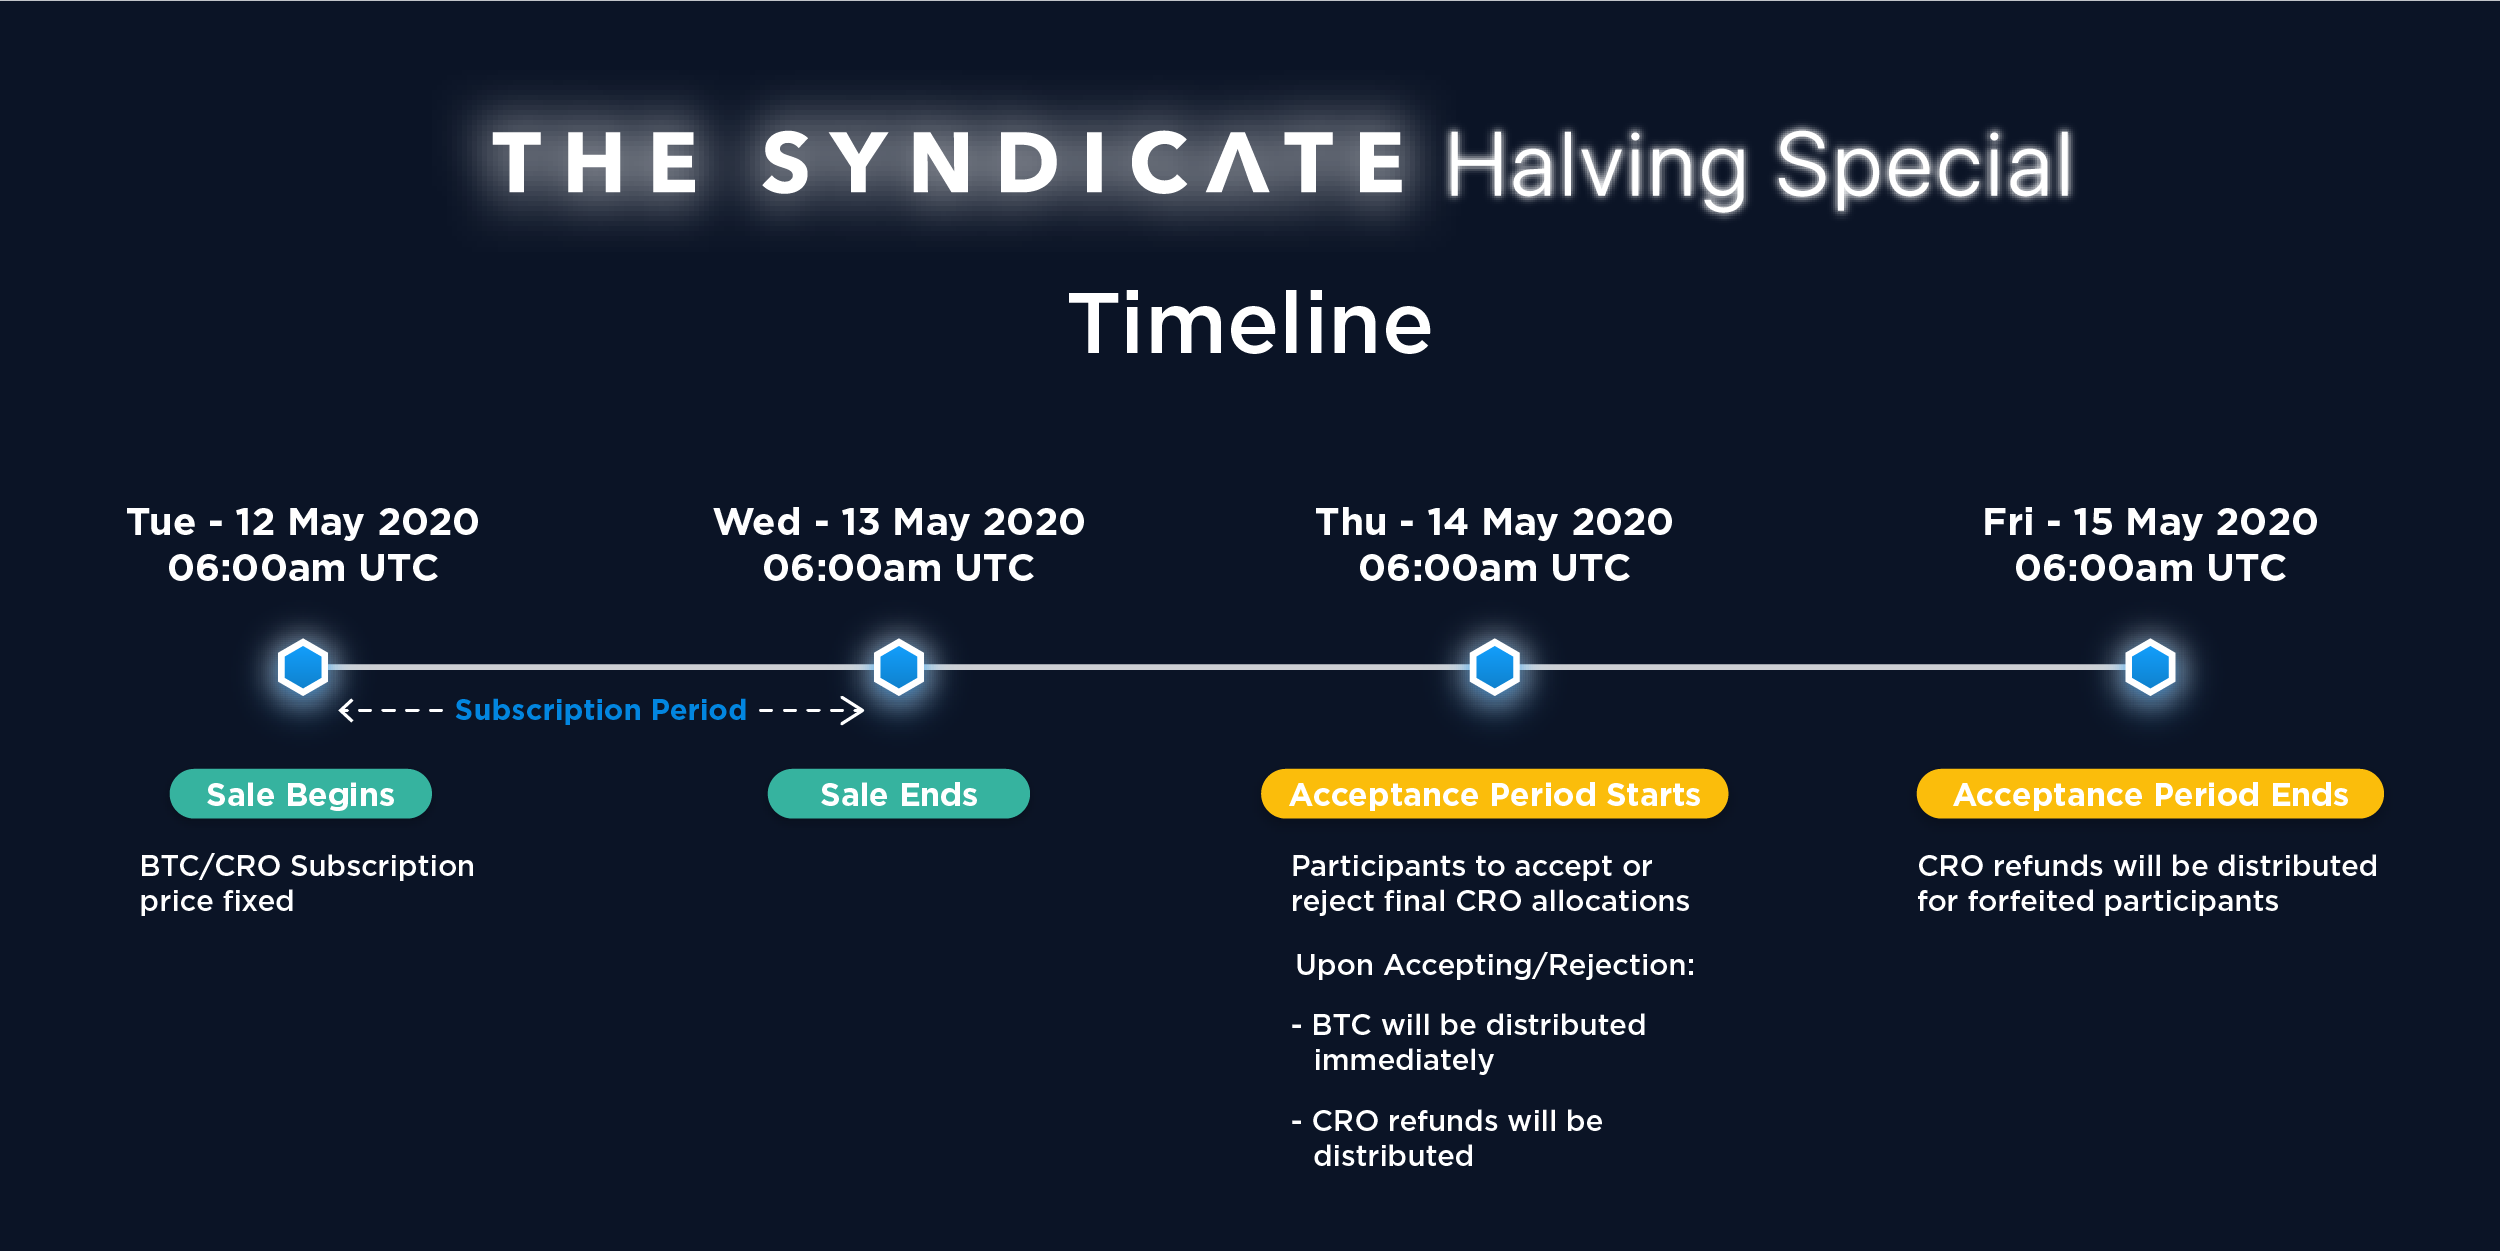 Halving promotions from Crypto.com! BTC with 50% discount and giveaway for 100,000 USD -  Blocksats 24